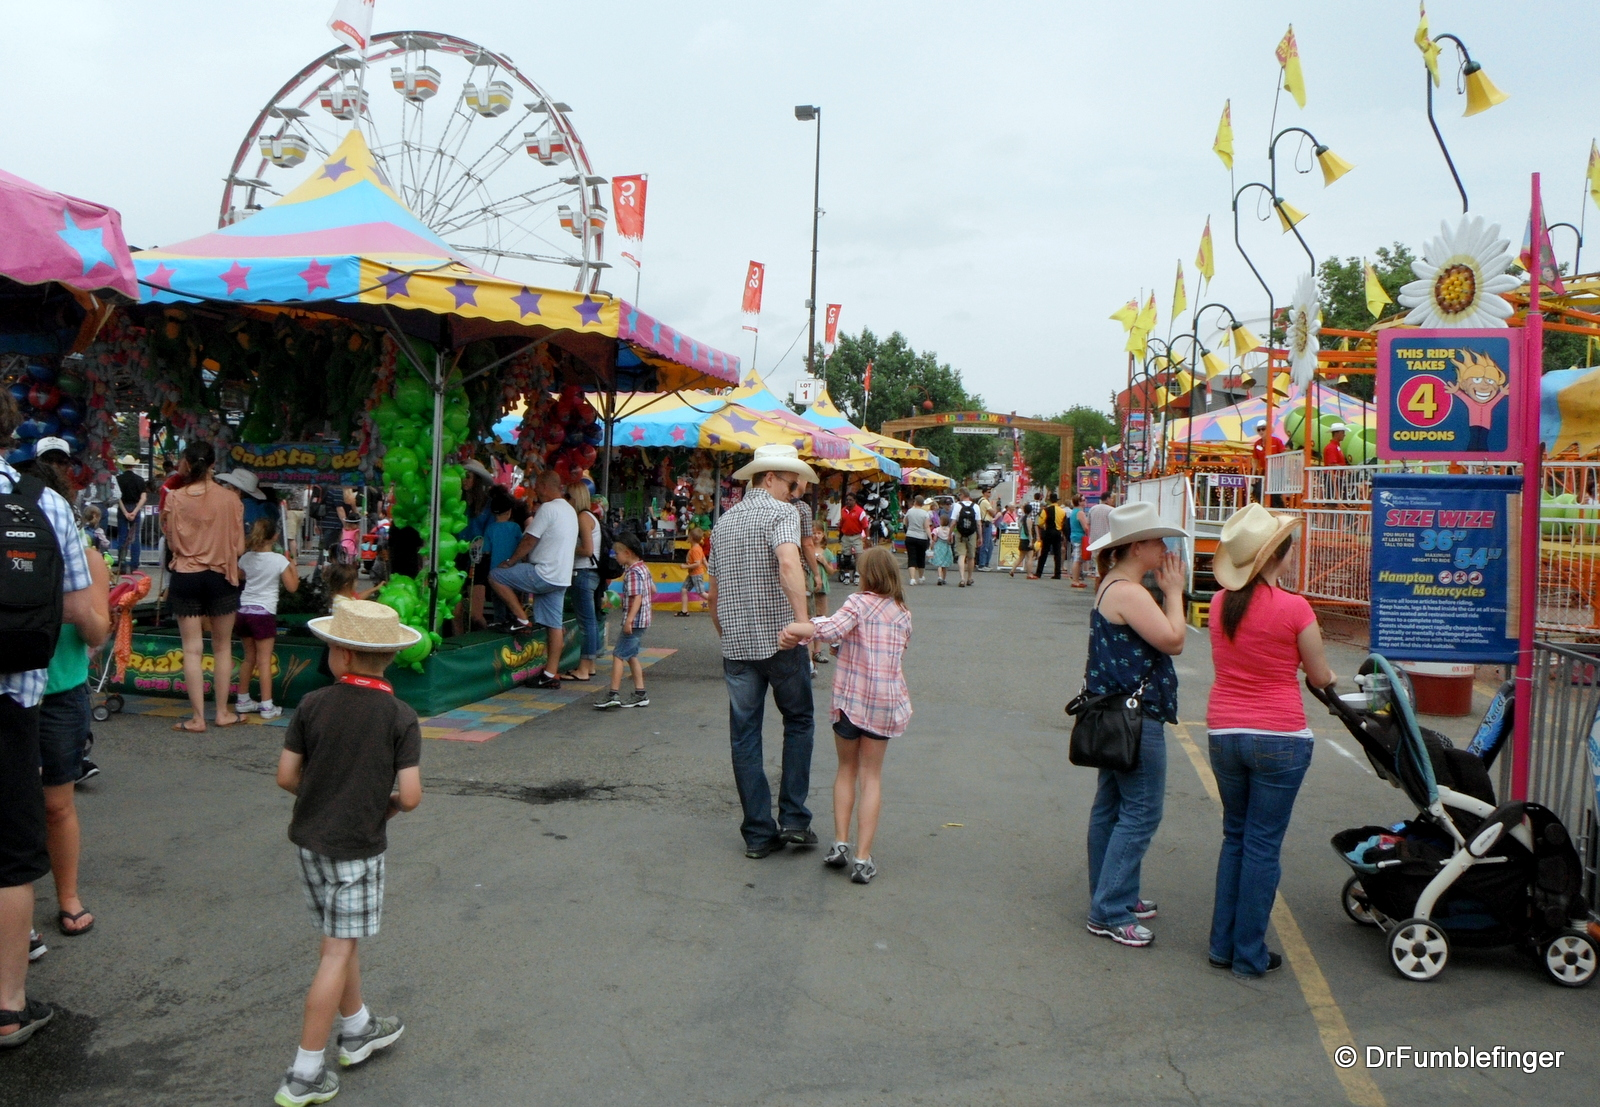 The Calgary Stampede Turns 100 The Greatest Outdoor Show